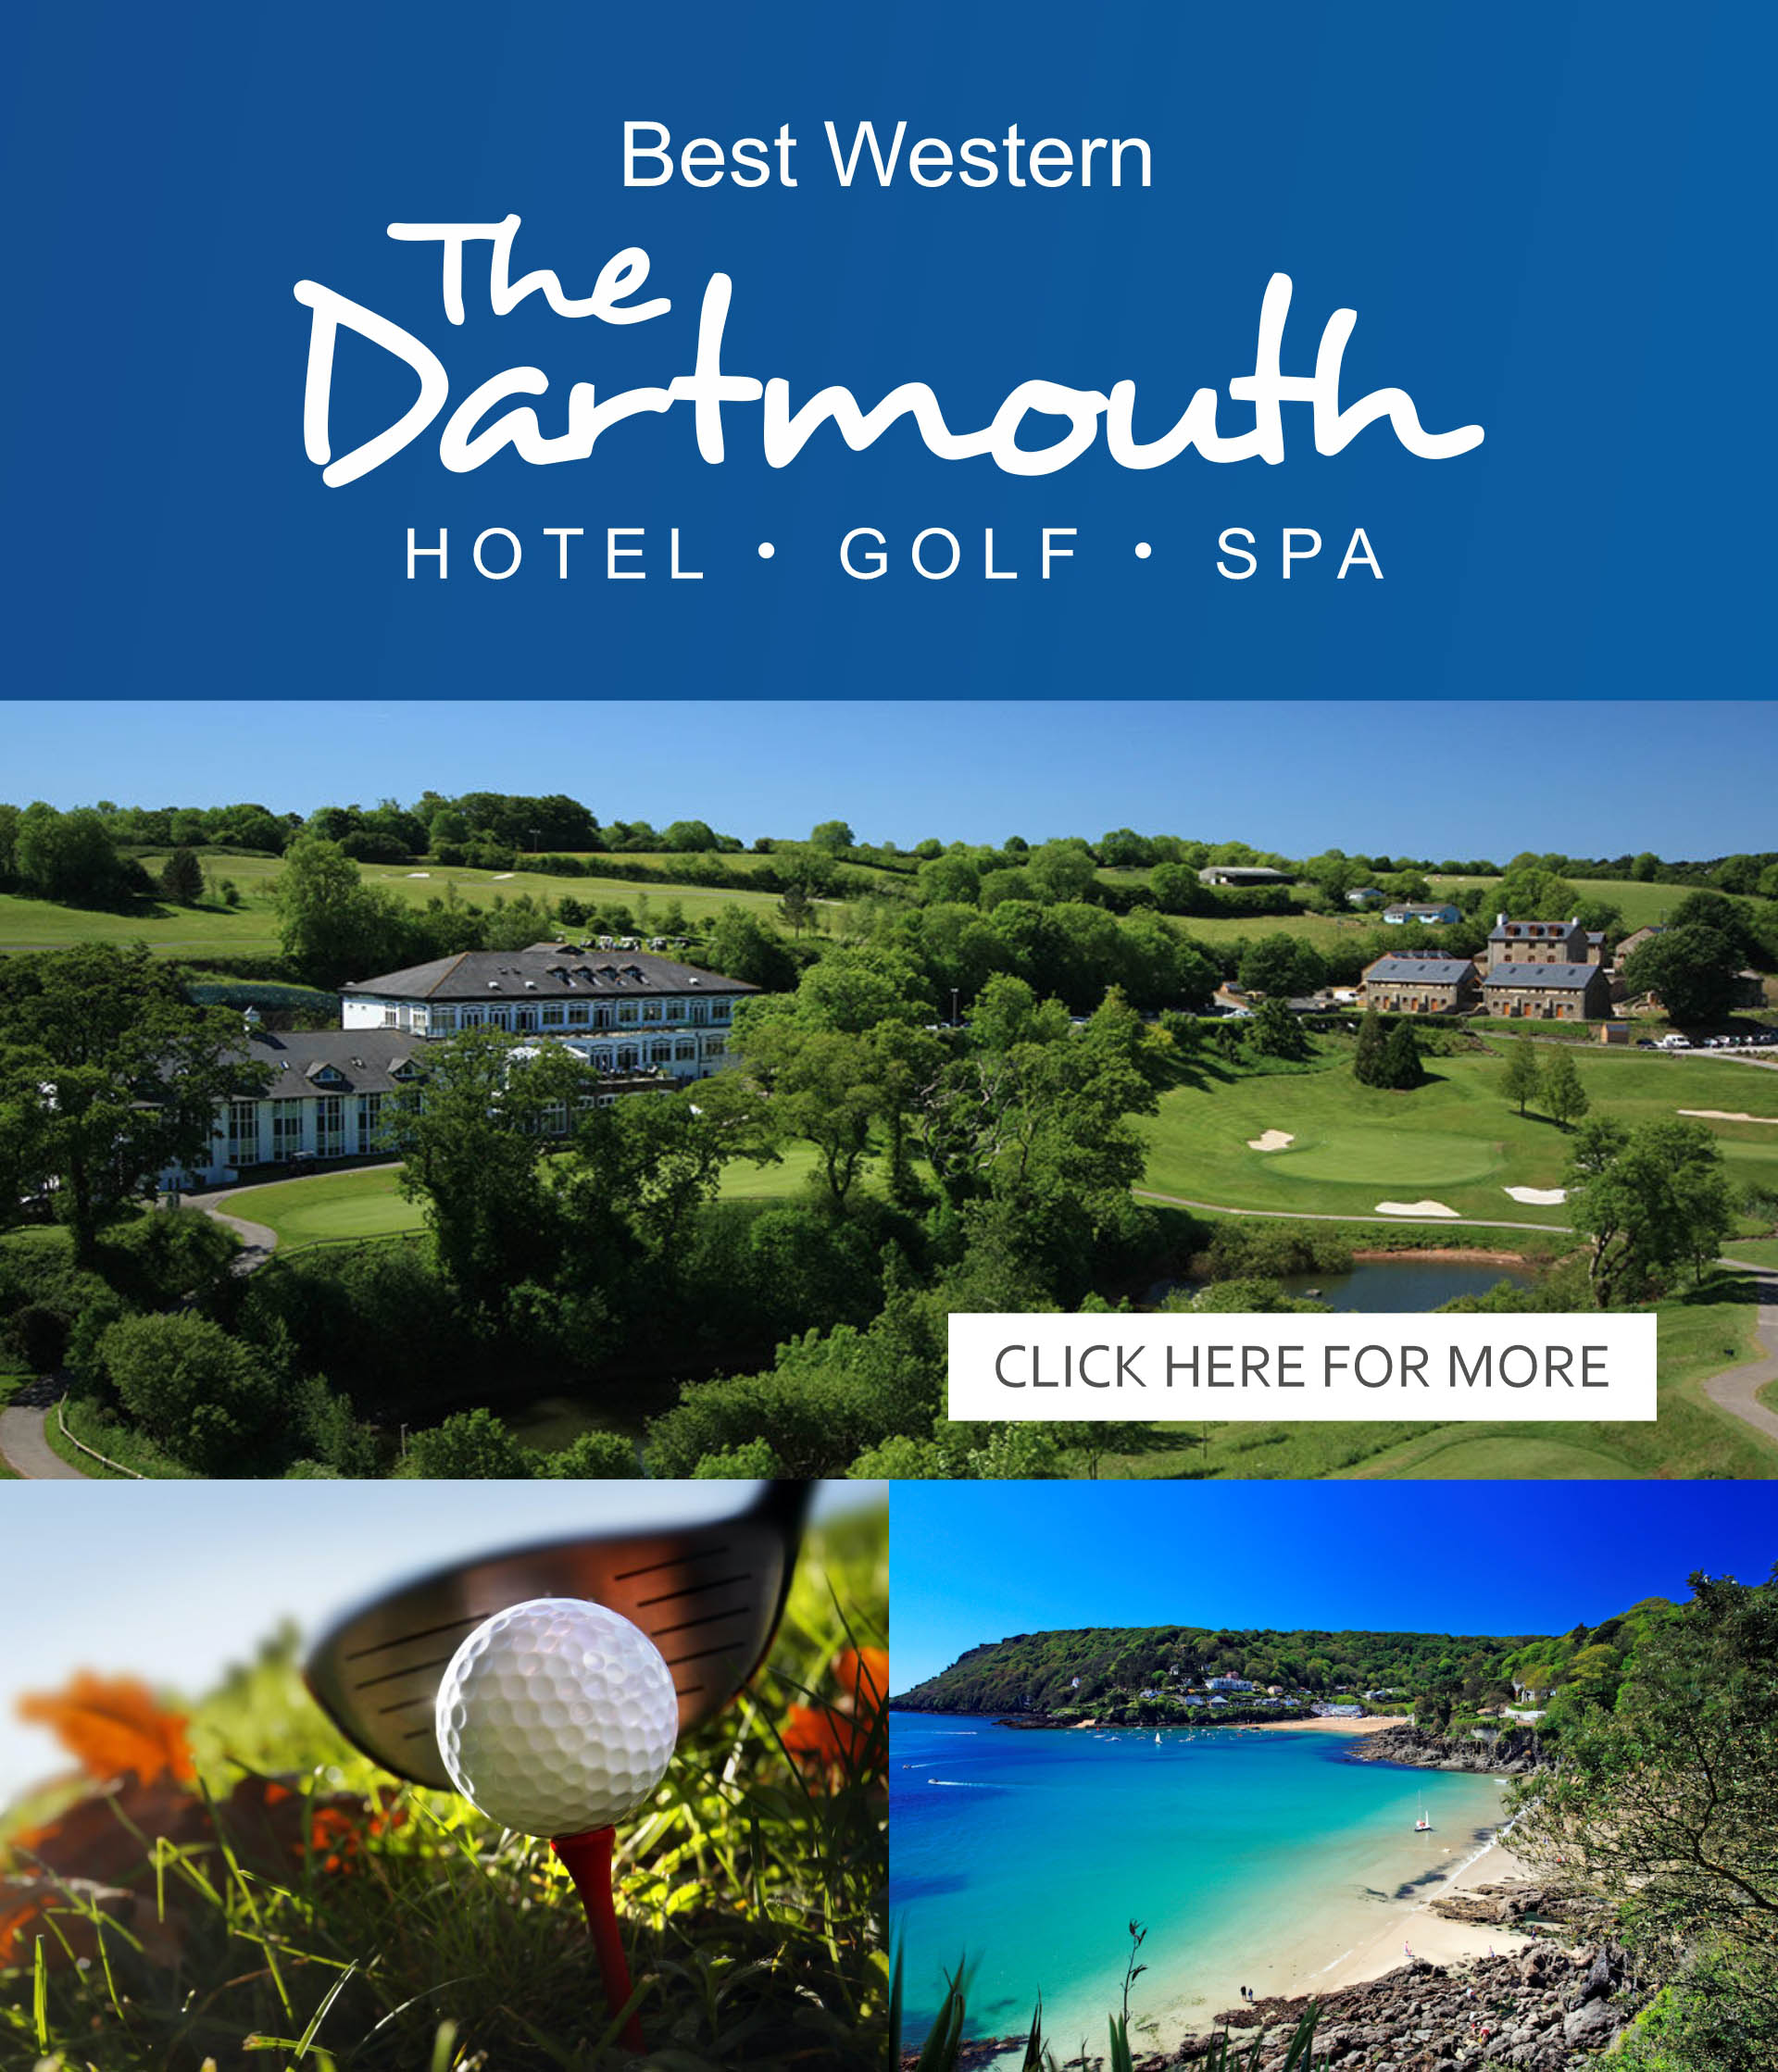 the Dartmouth Hotel, Golf & Spa Meeting offer